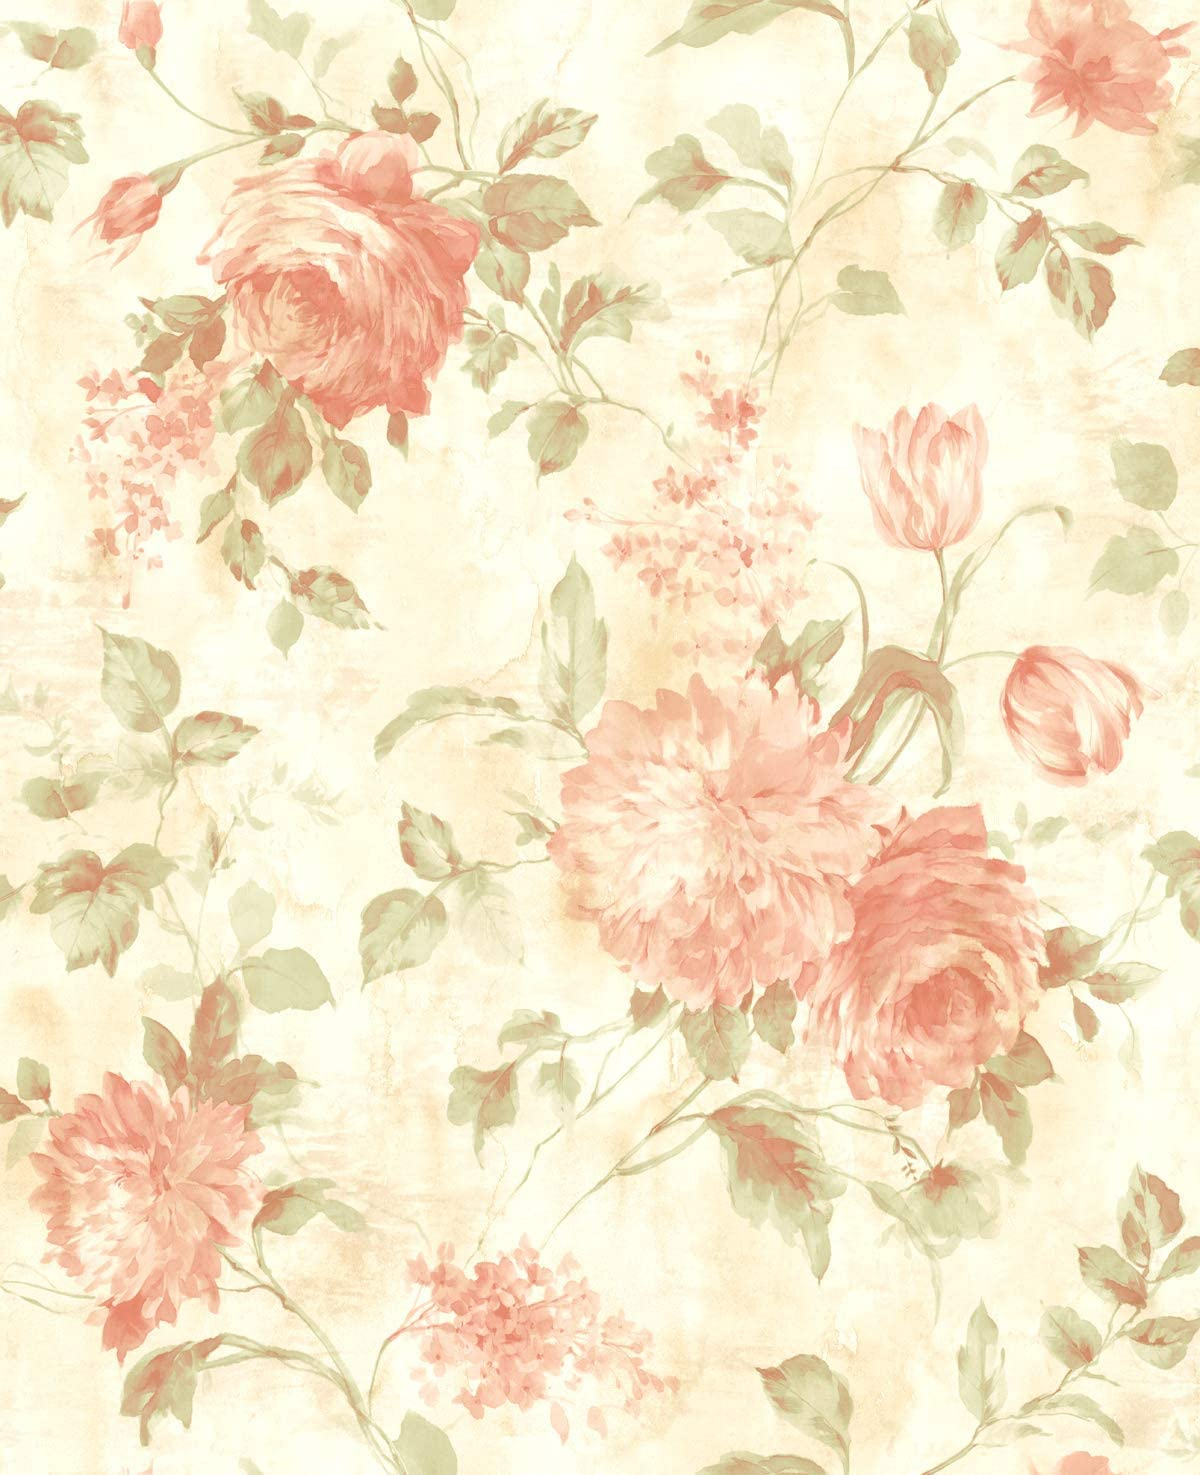 Pink Floral Wallpaper Chinoiserie Wallpaper Rose Wallpaper Floral